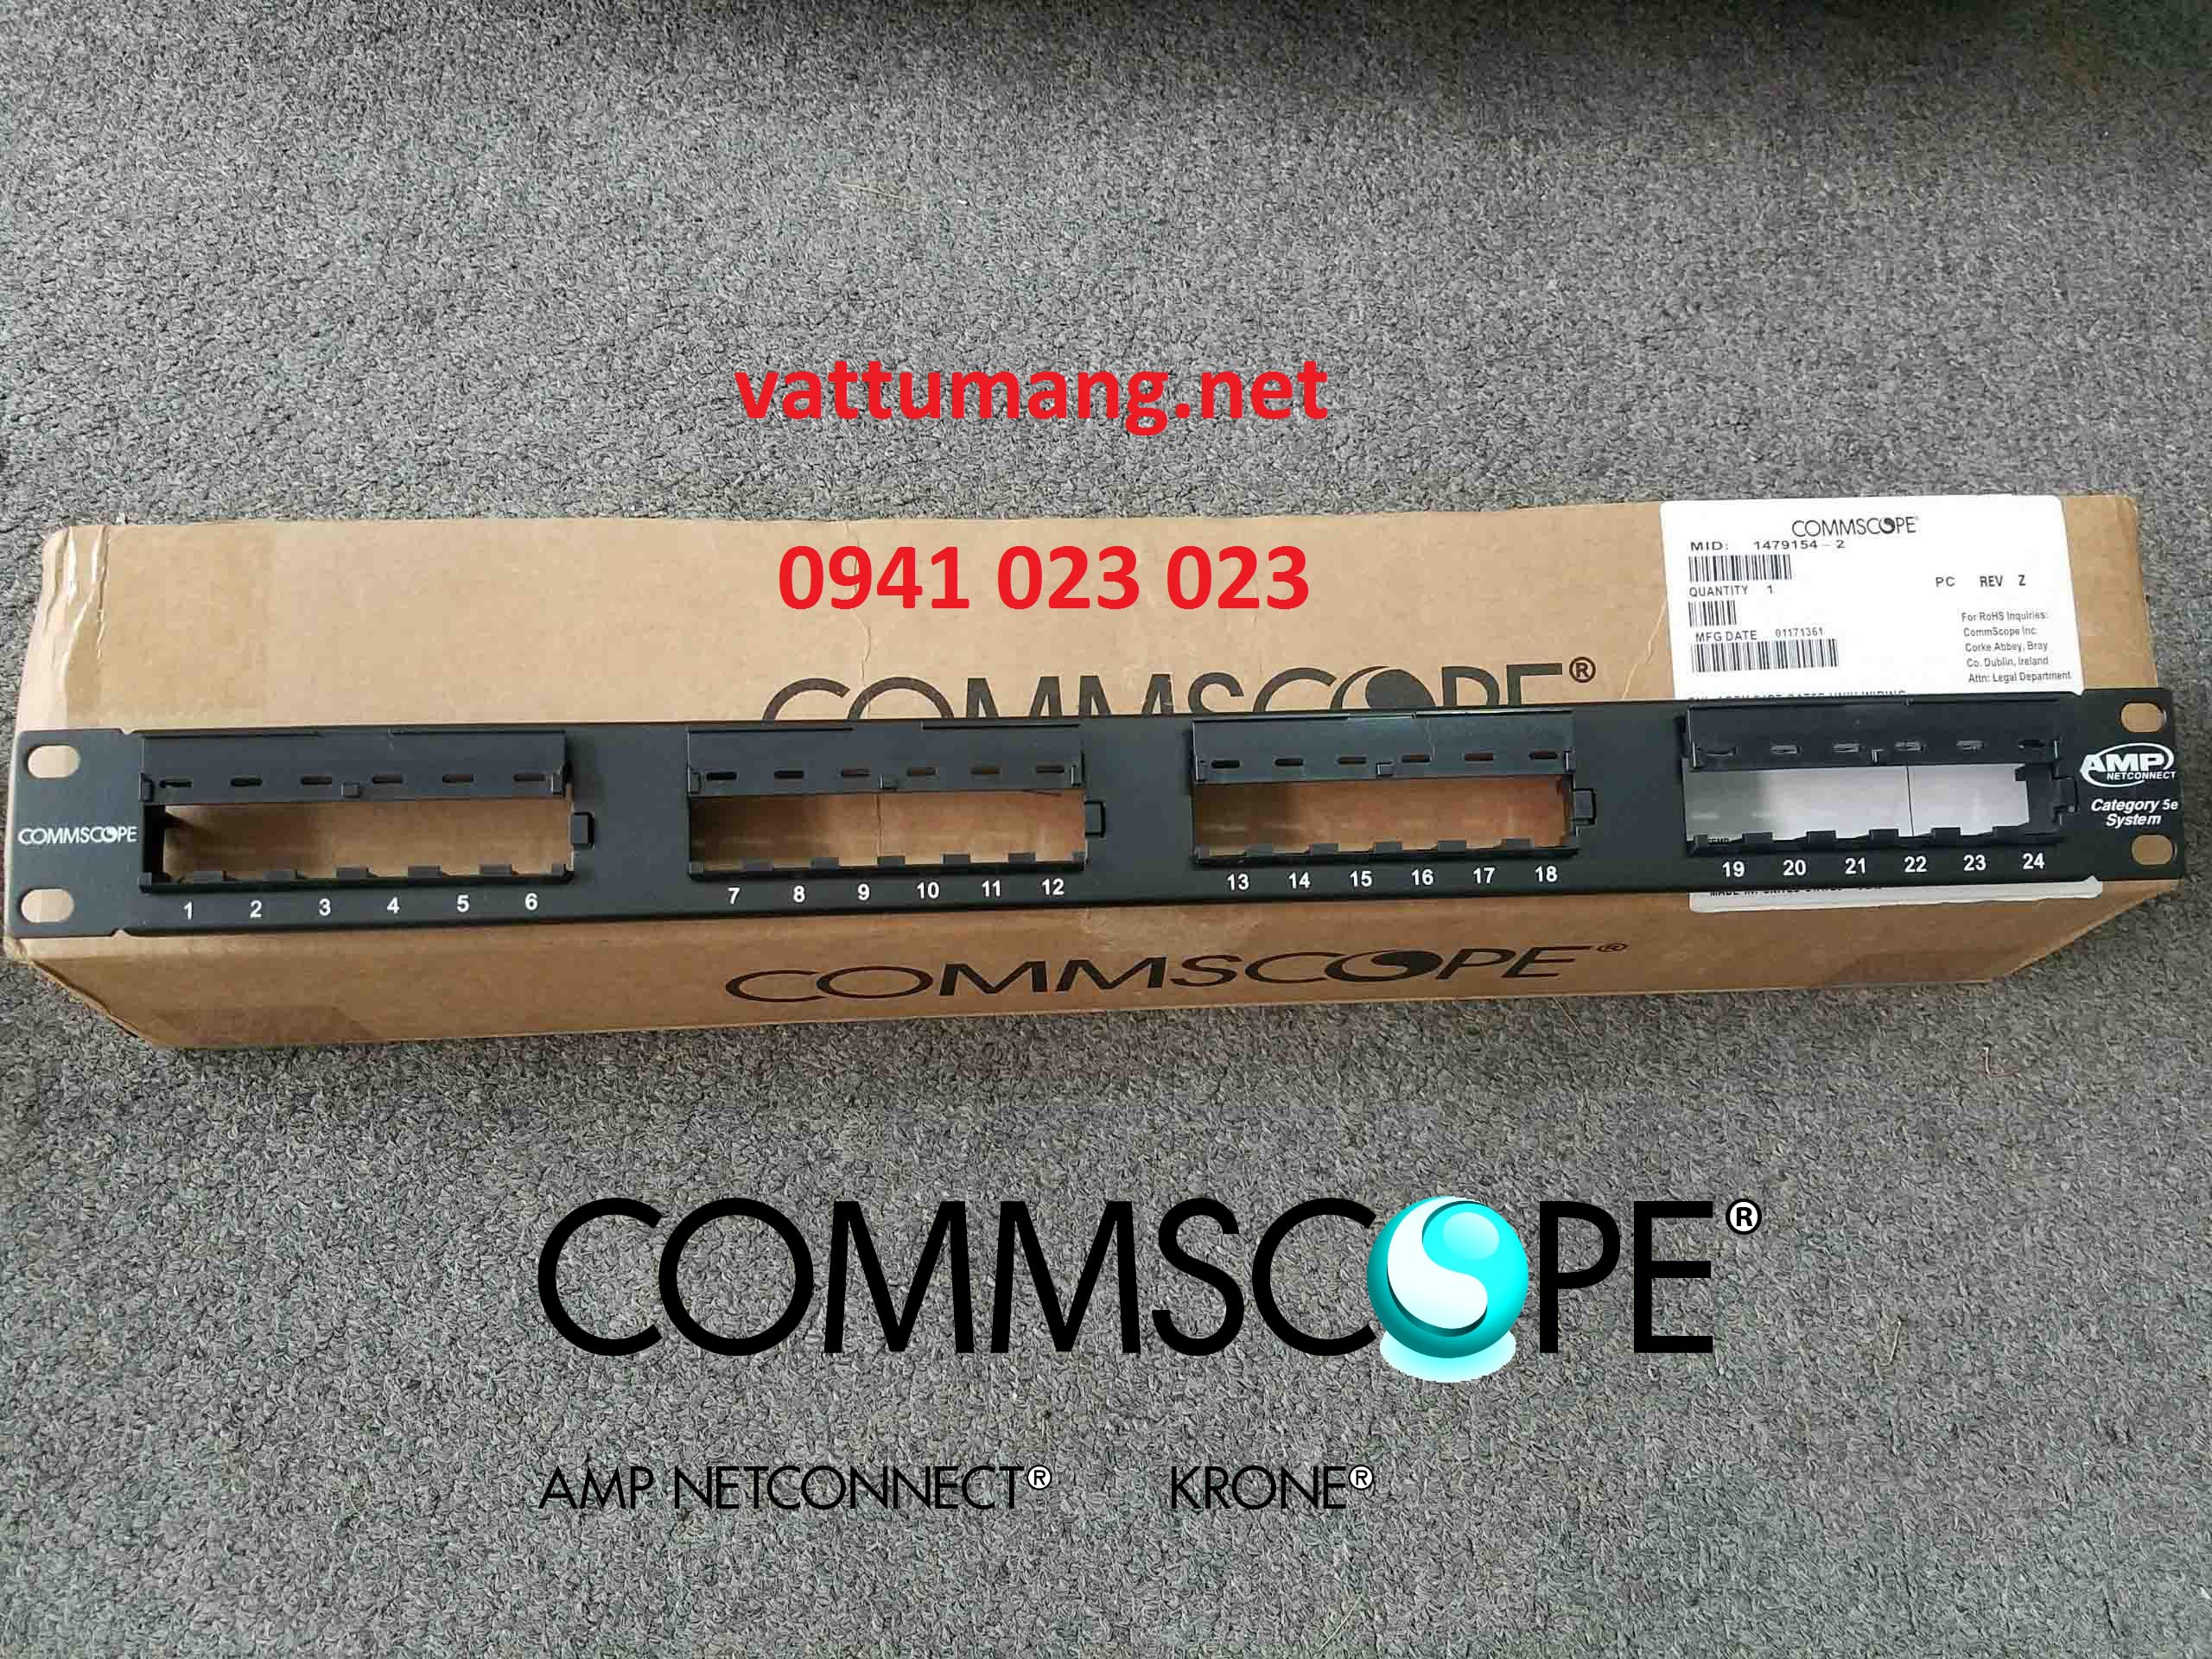 Patch panel AMP cat6 48 port (1375015-2) chính hãng Commscope